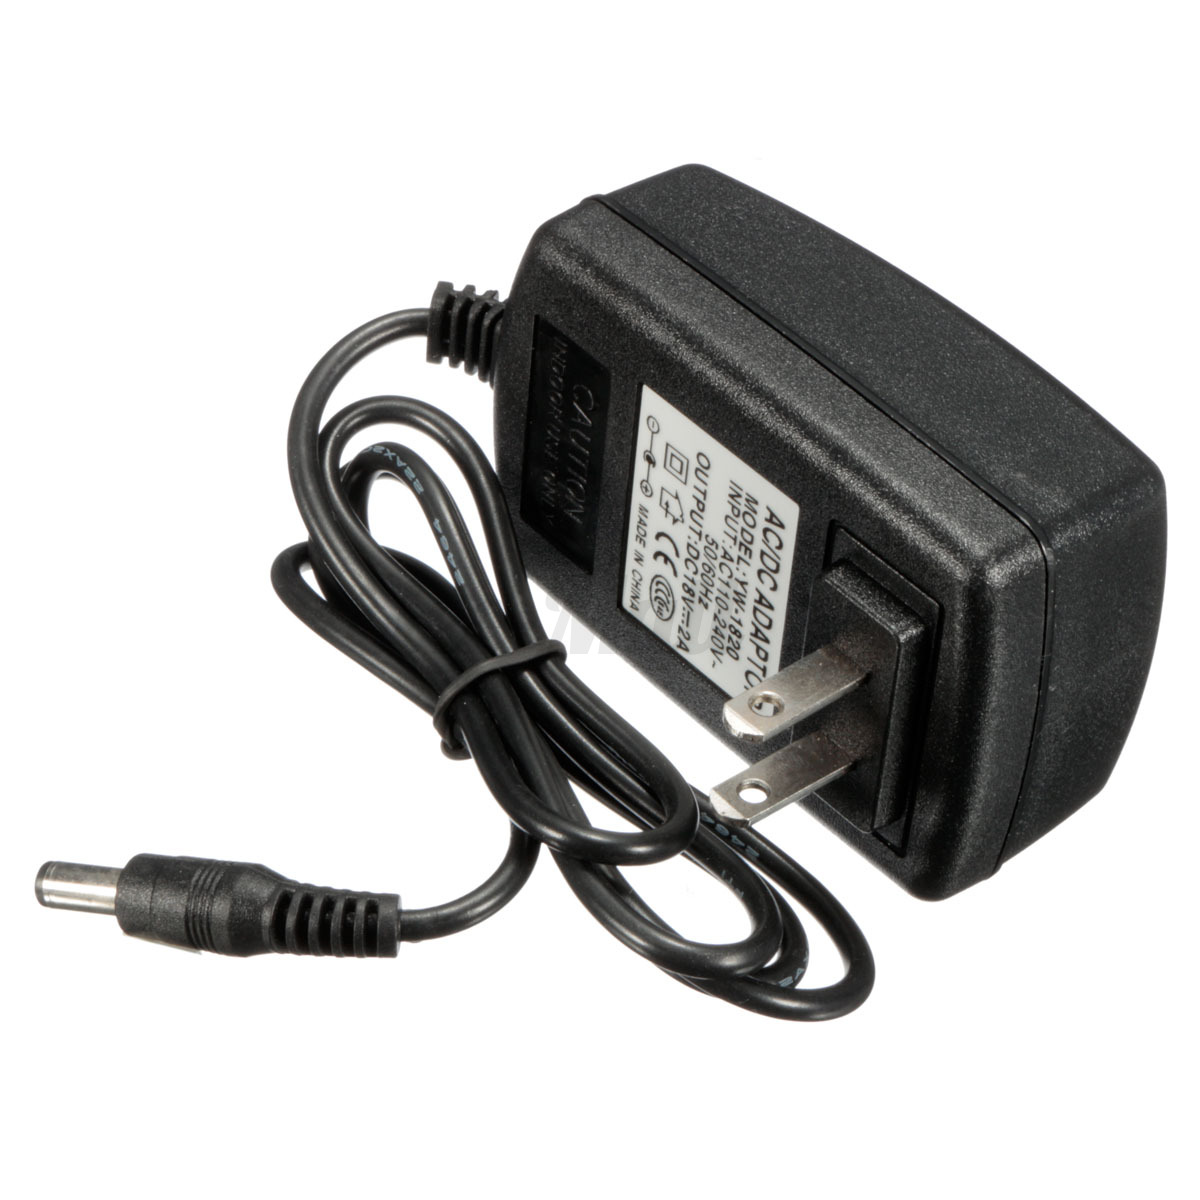 Dc Power Cable : Ac v adapter dc a power supply cord cable